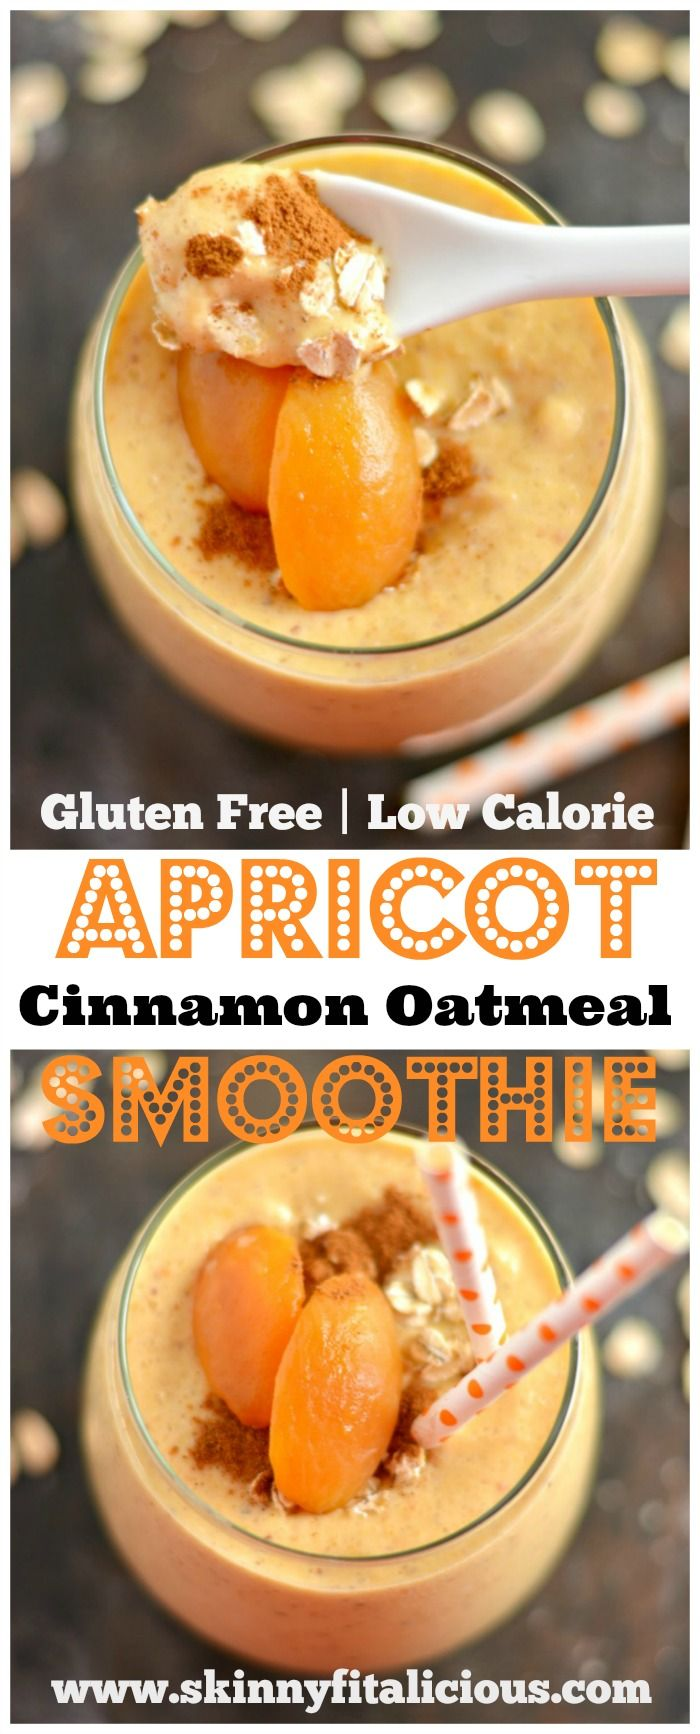 This Cinnamon Oat Apricot Smoothie is thick, creamy & bursting with sweet cinnamon flavors. This smoothie is guaranteed to keep you satisfied for hours. An easy gluten-free, vegan breakfast or snack.